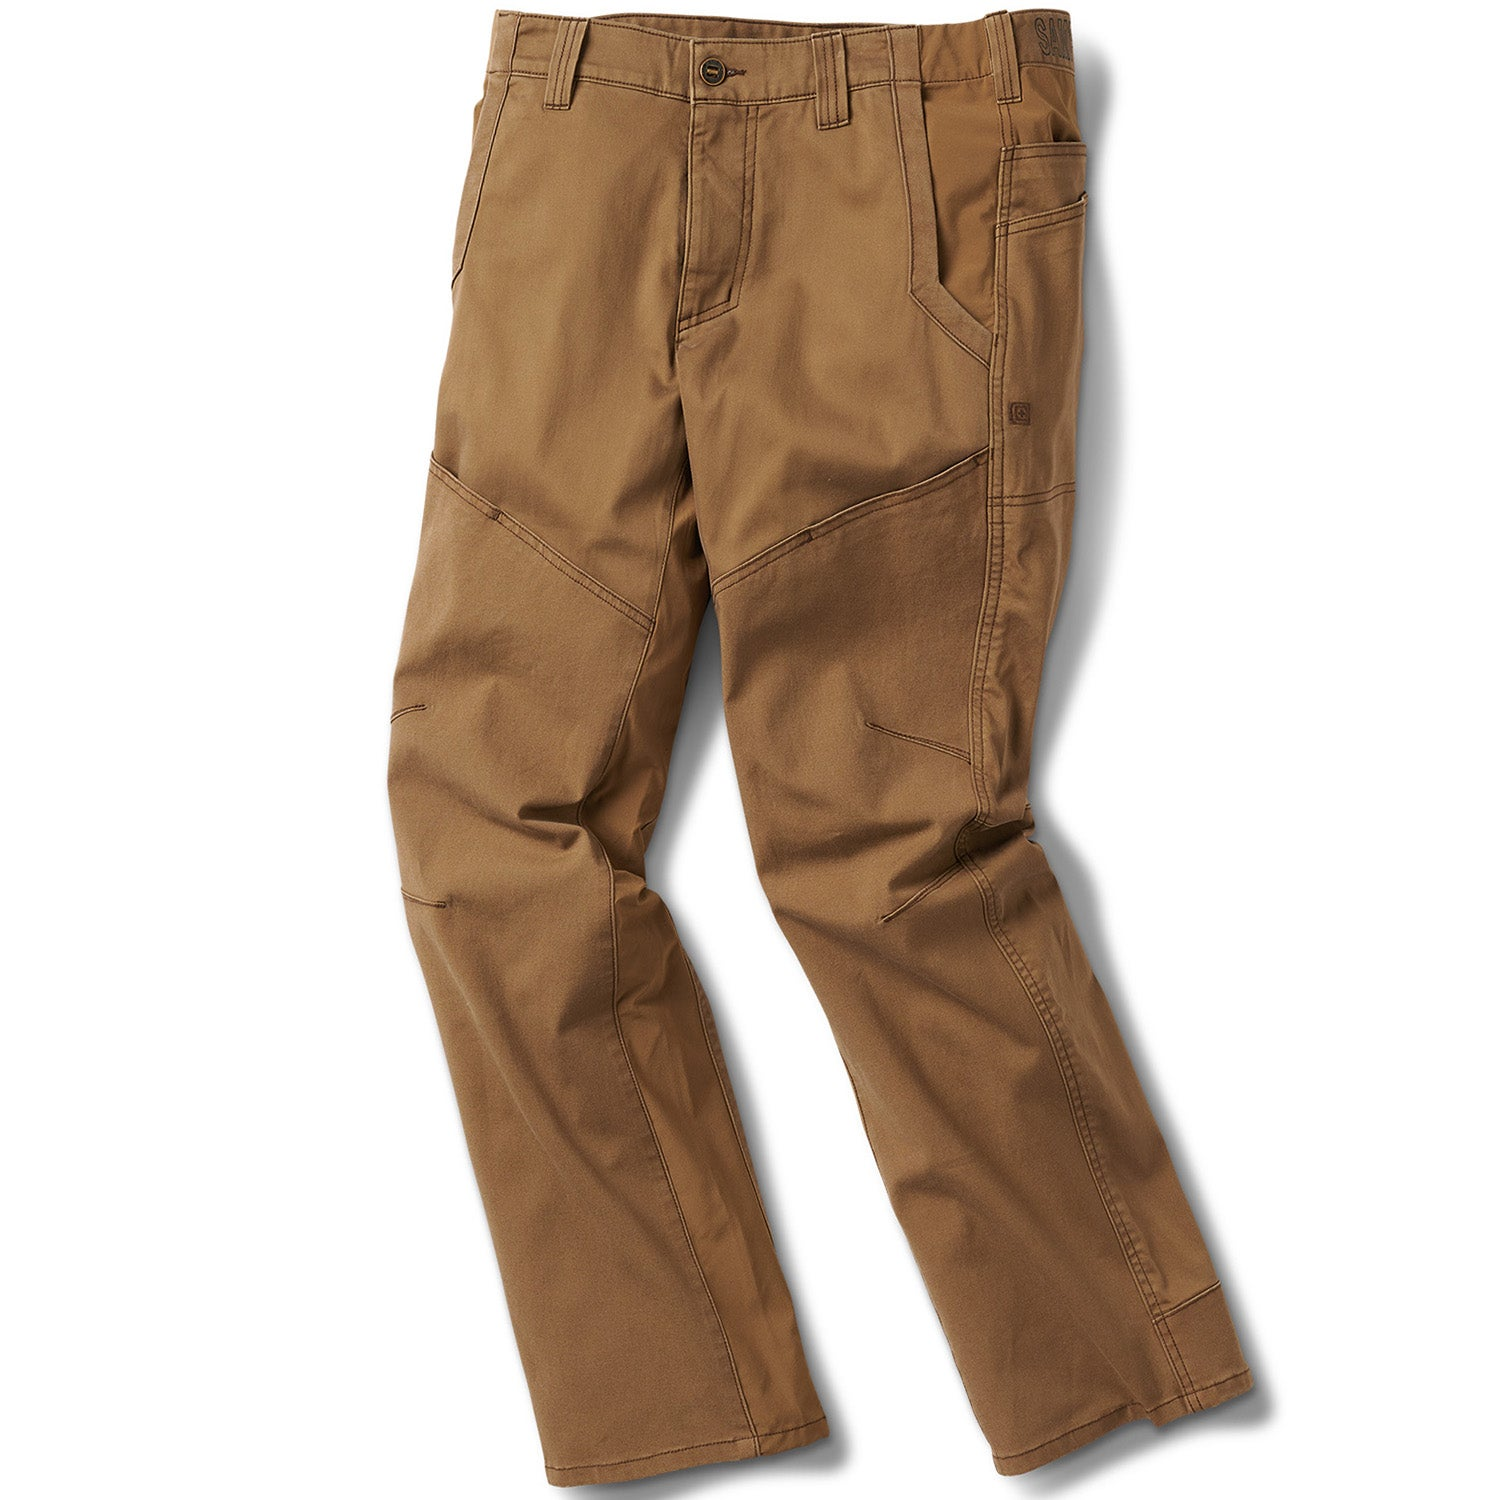 5.11 Tactical Quest Trousers